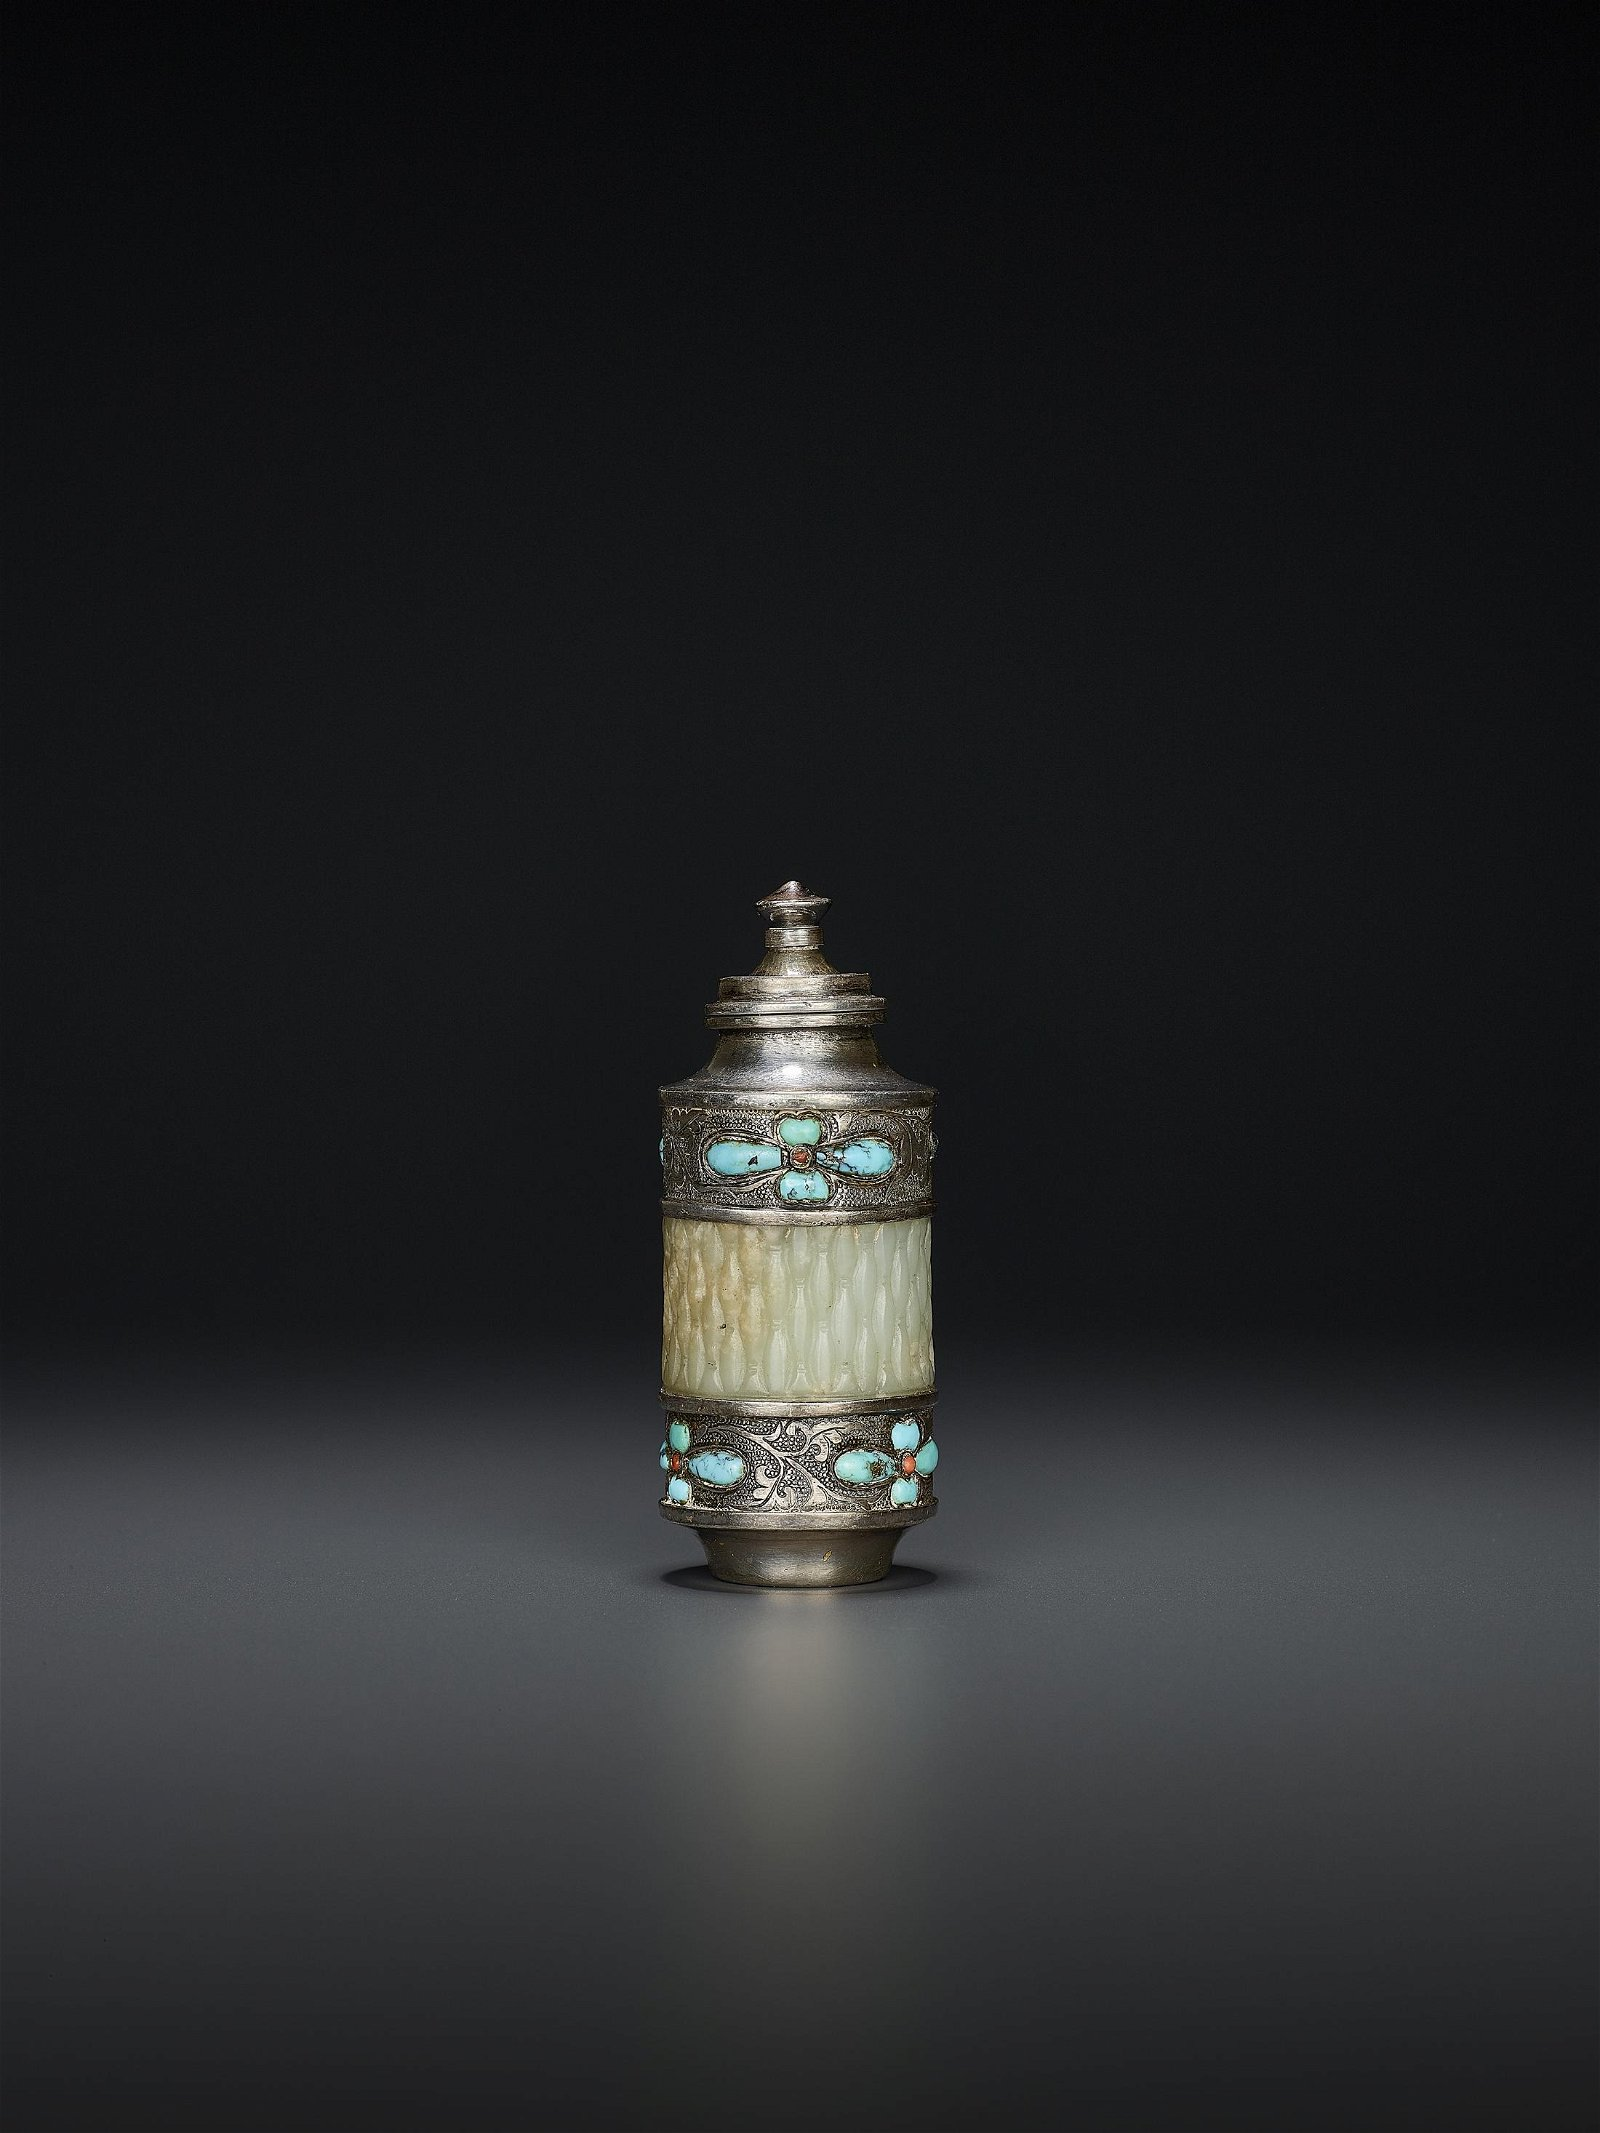 A SILVER AND JADE SNUFF BOTTLE, QING